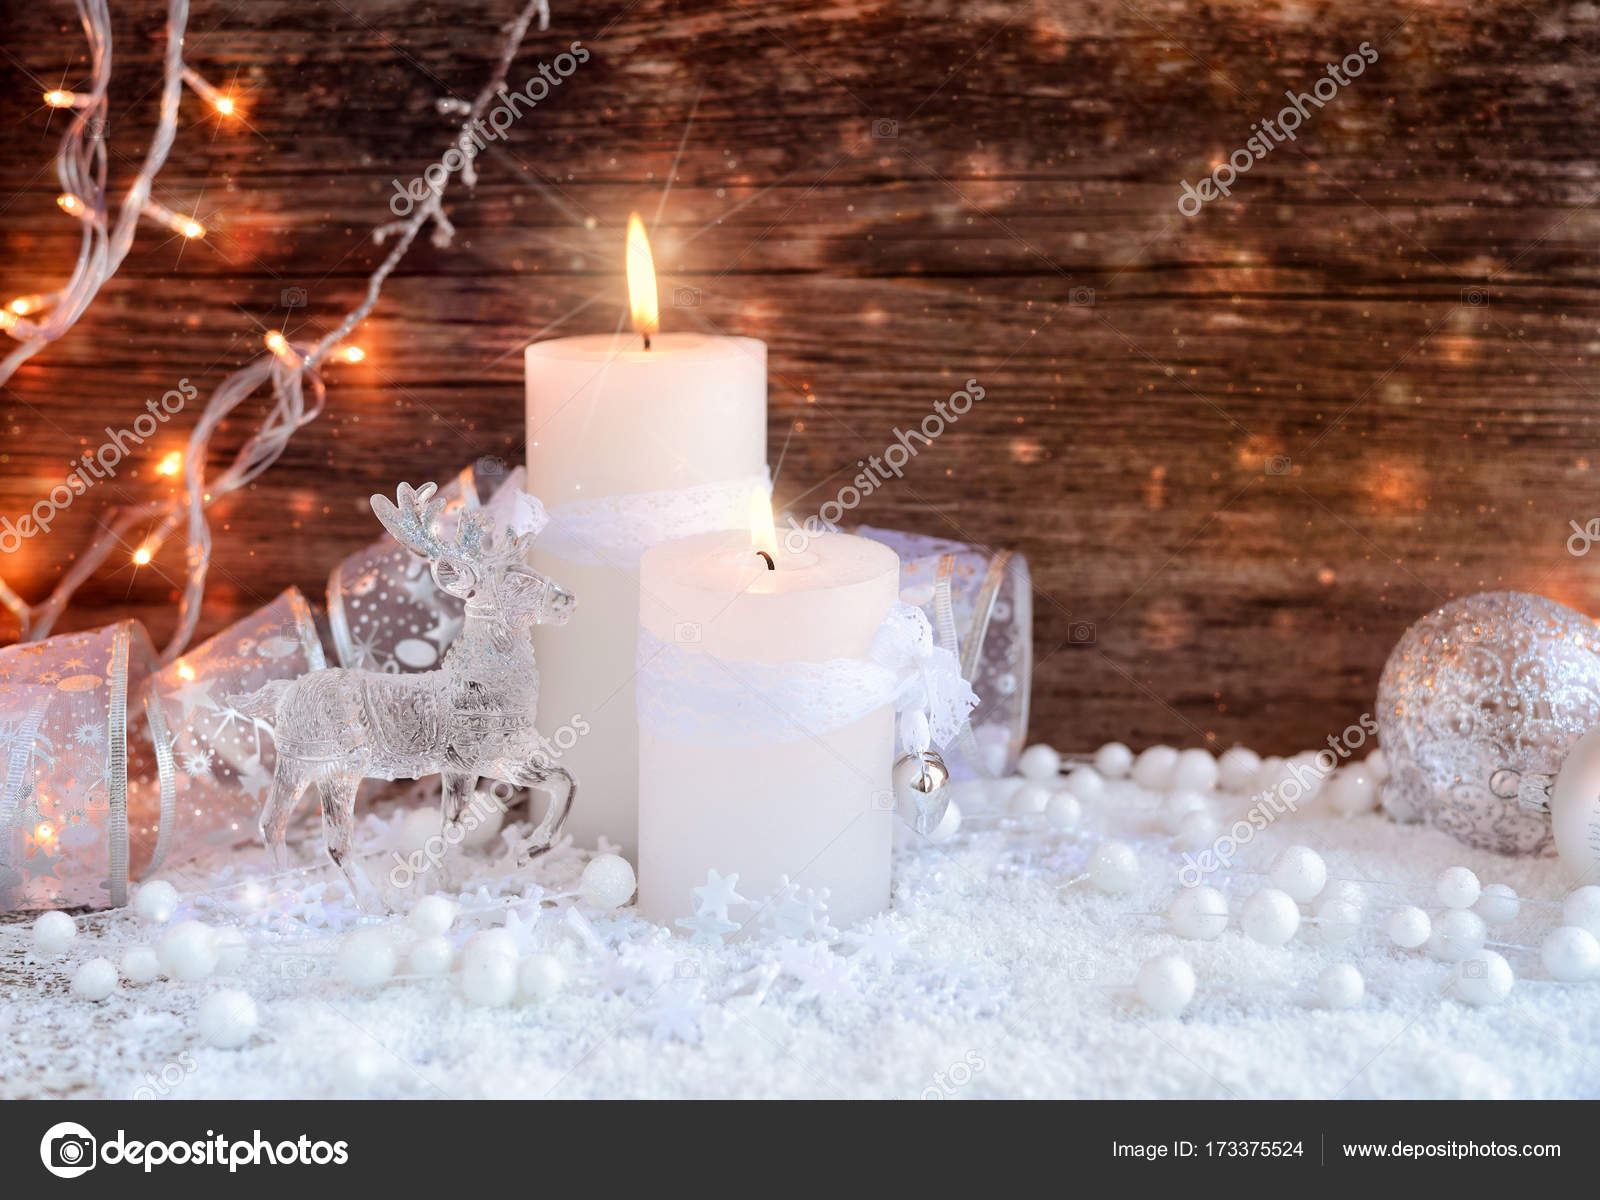 Weihnachtsbeleuchtung Schneefall.Two Burning Candles With A Deer With Christmas Decorative Balls On